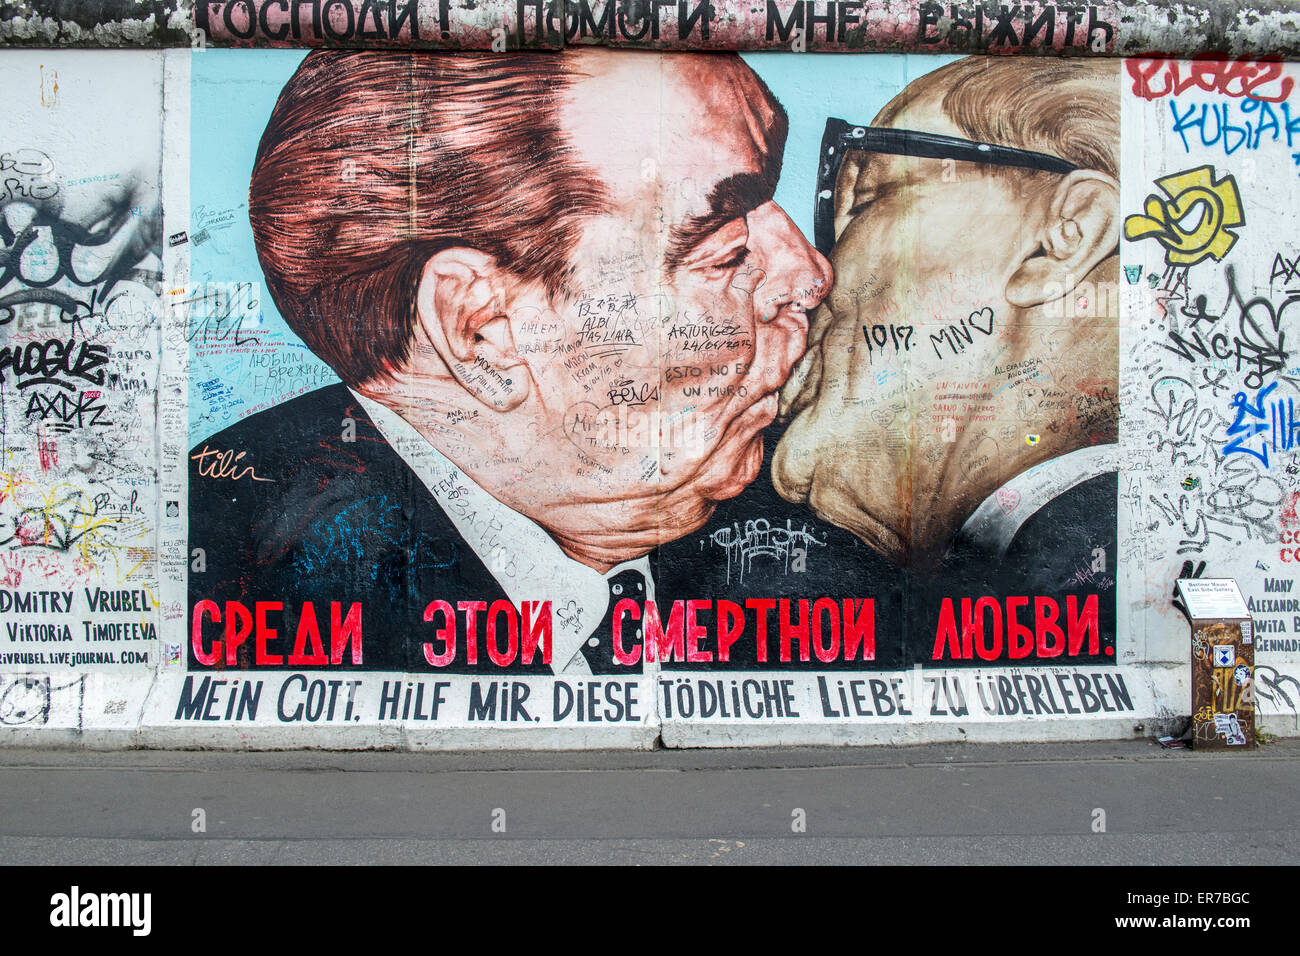 Artwork On The Berlin Wall At The East Side Gallery Depicting A Kiss  Between Leonid Brezhnev And Erich Honecker. Part 57